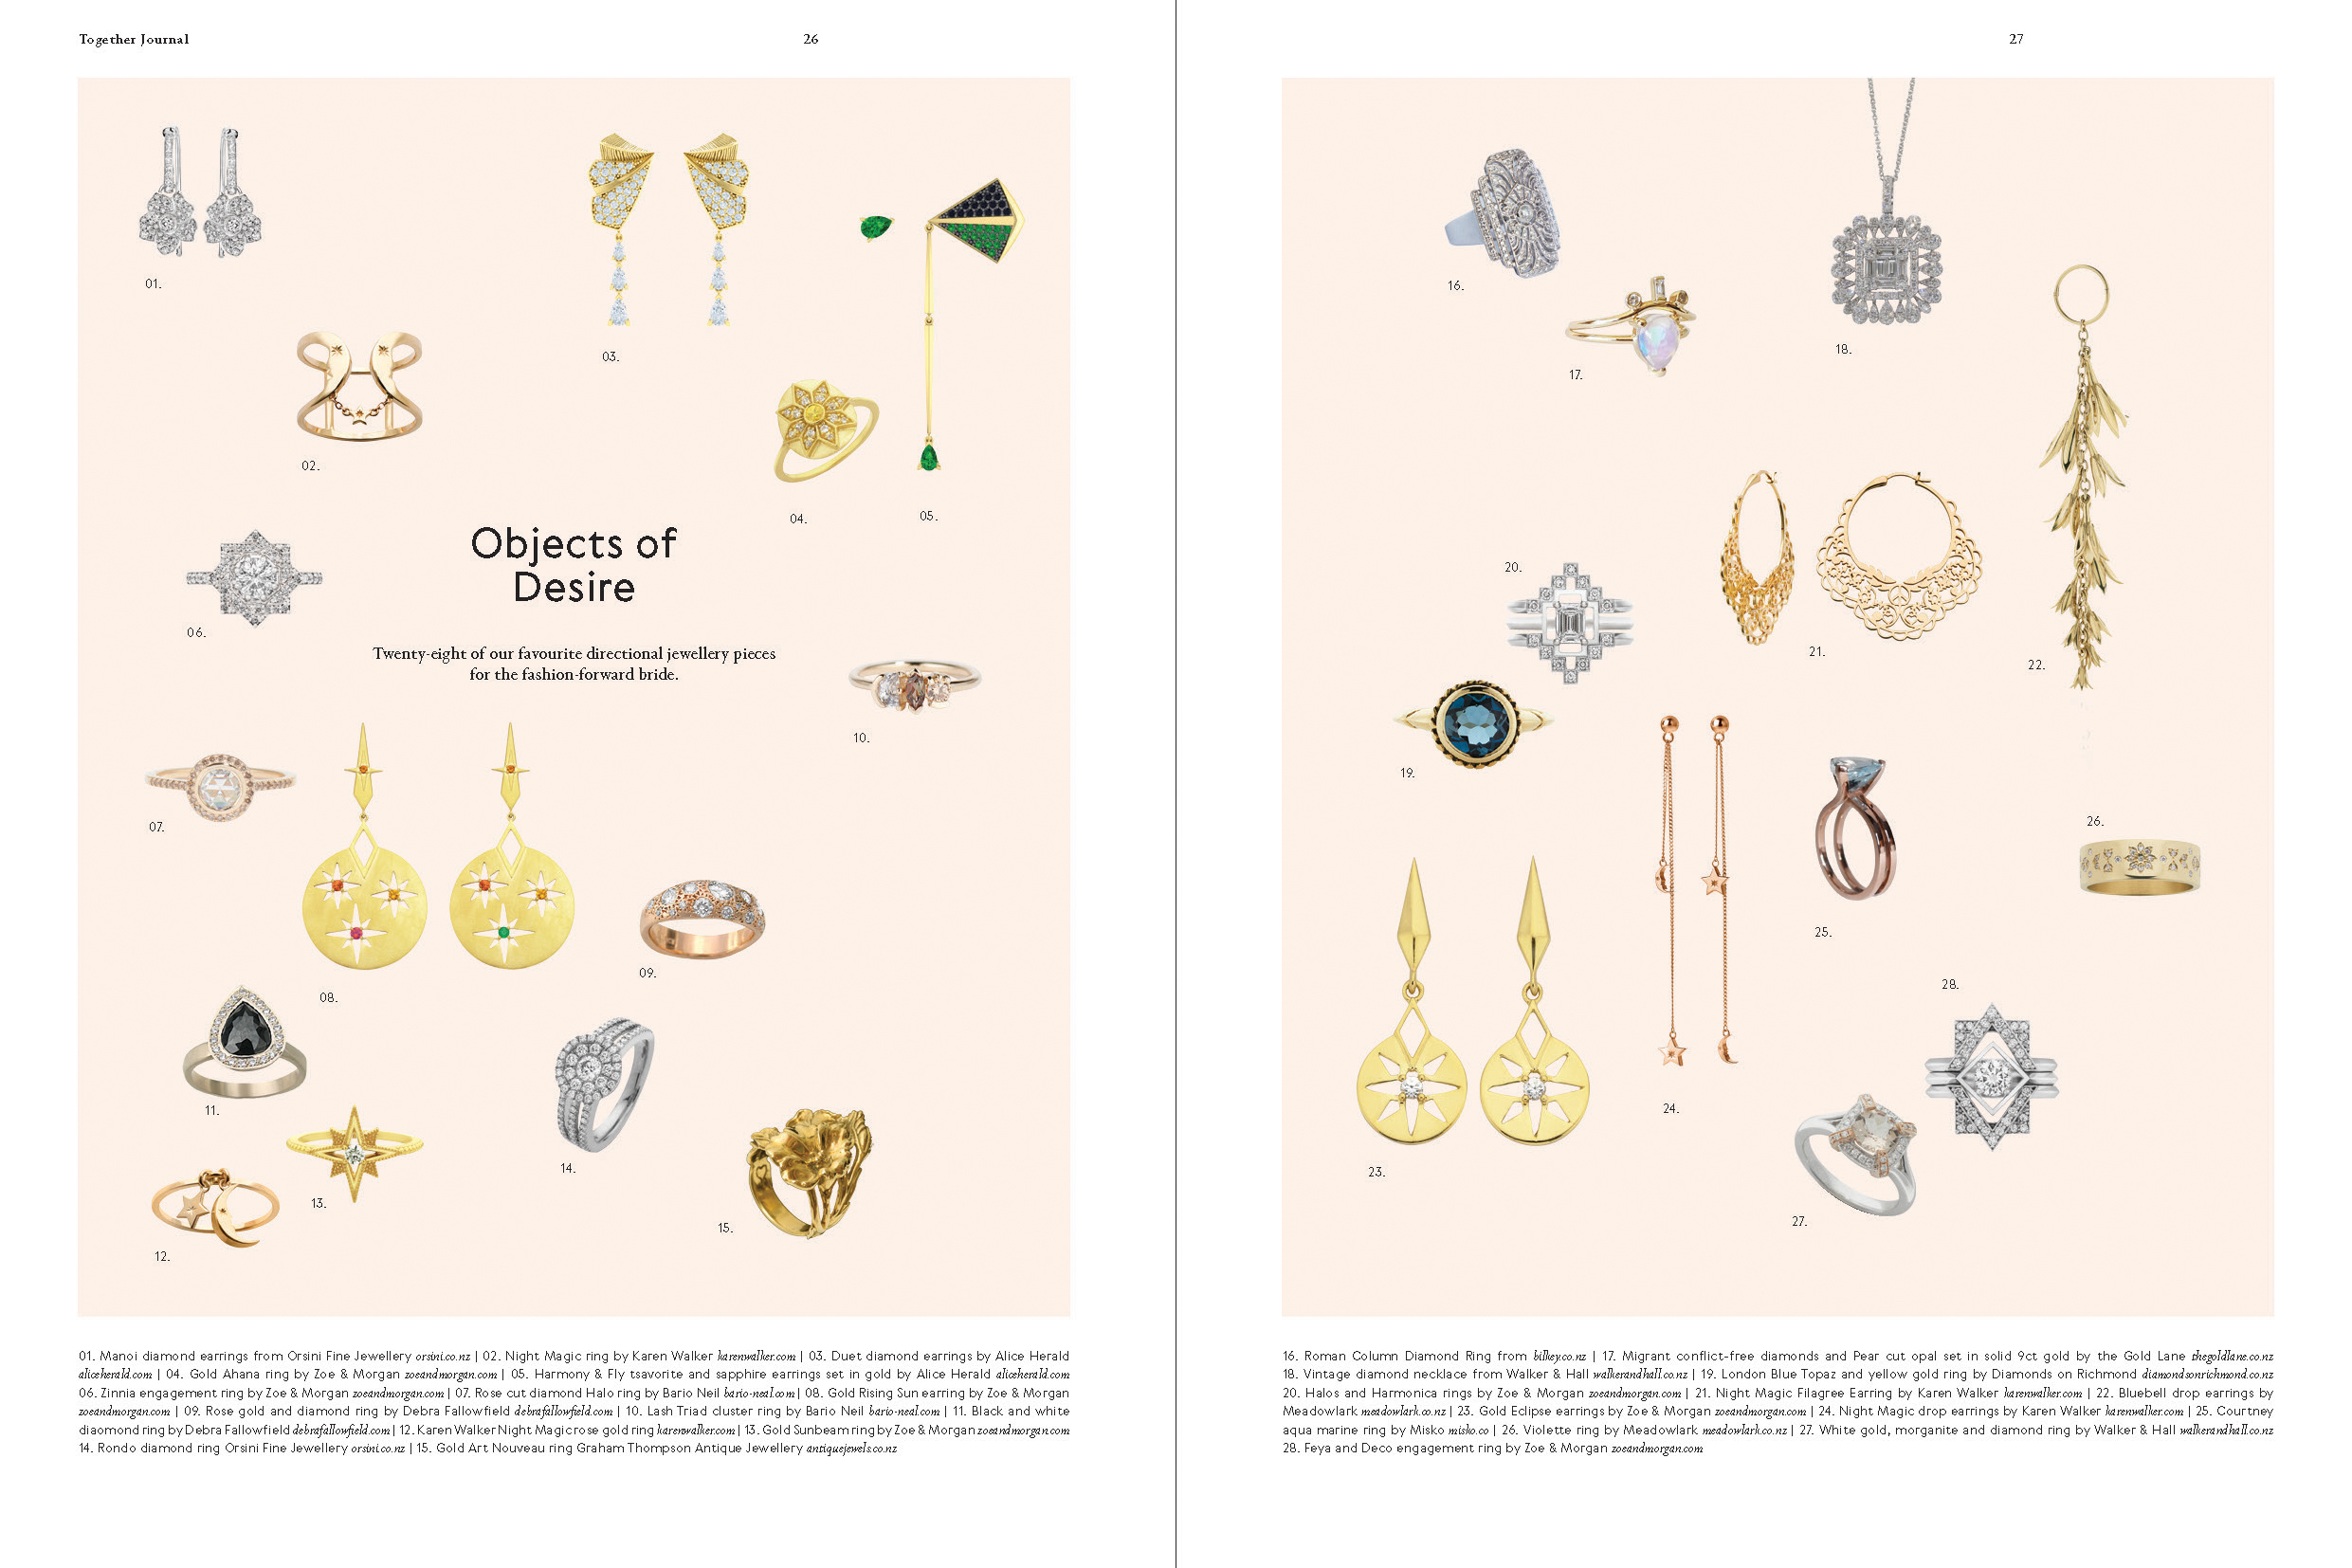 Categories: Fashion-Objects of Desire - Issue 9